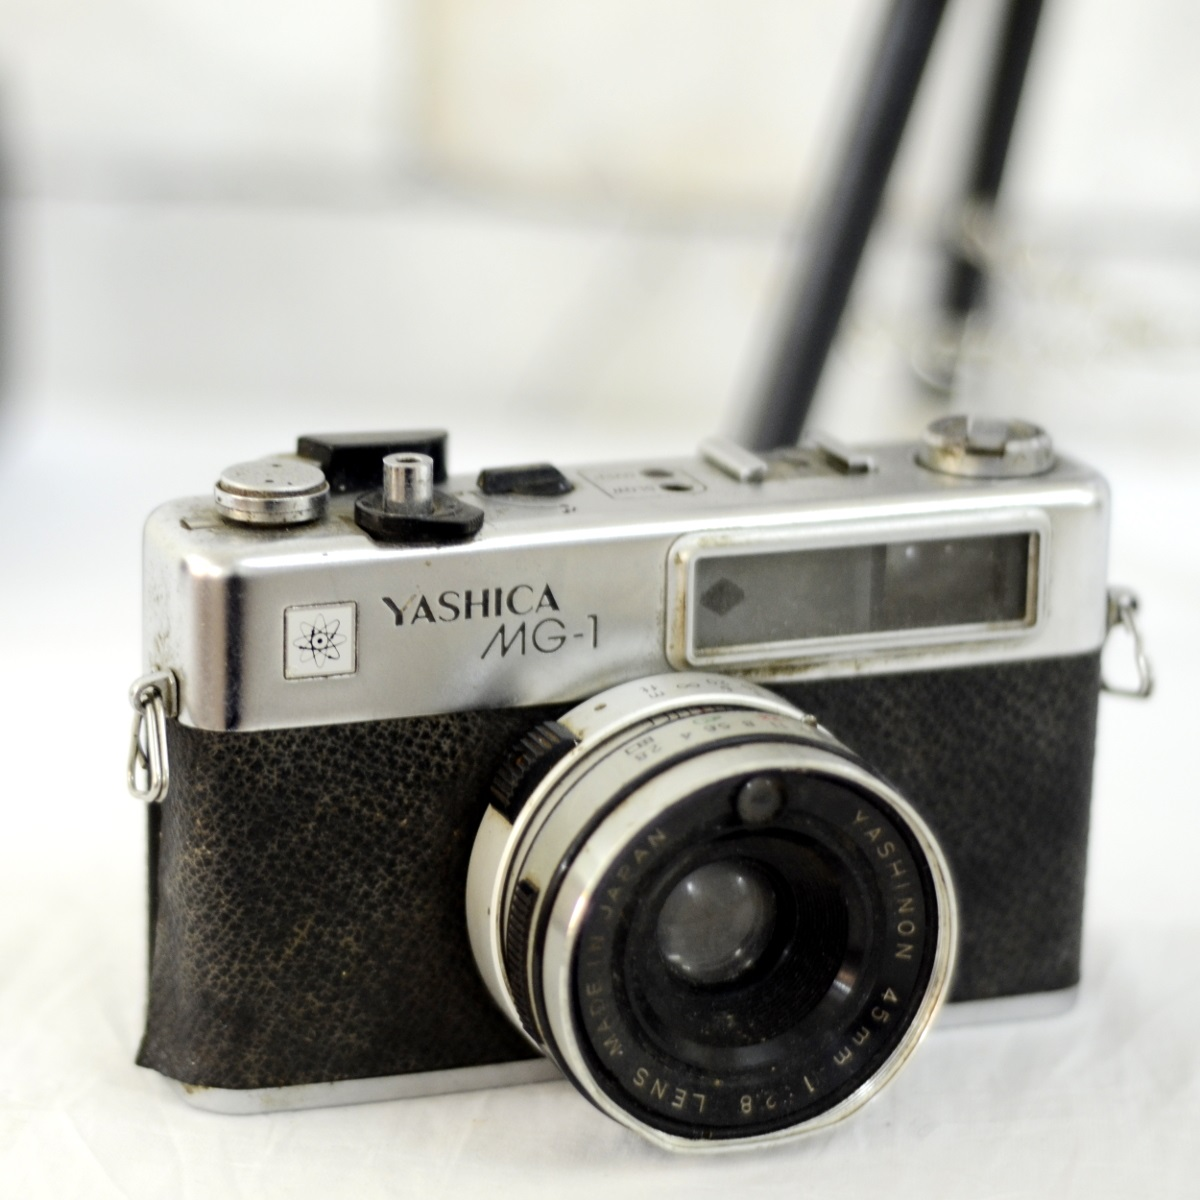 Antique Vintage Camera Yashica MG-1 Model - Antikcart